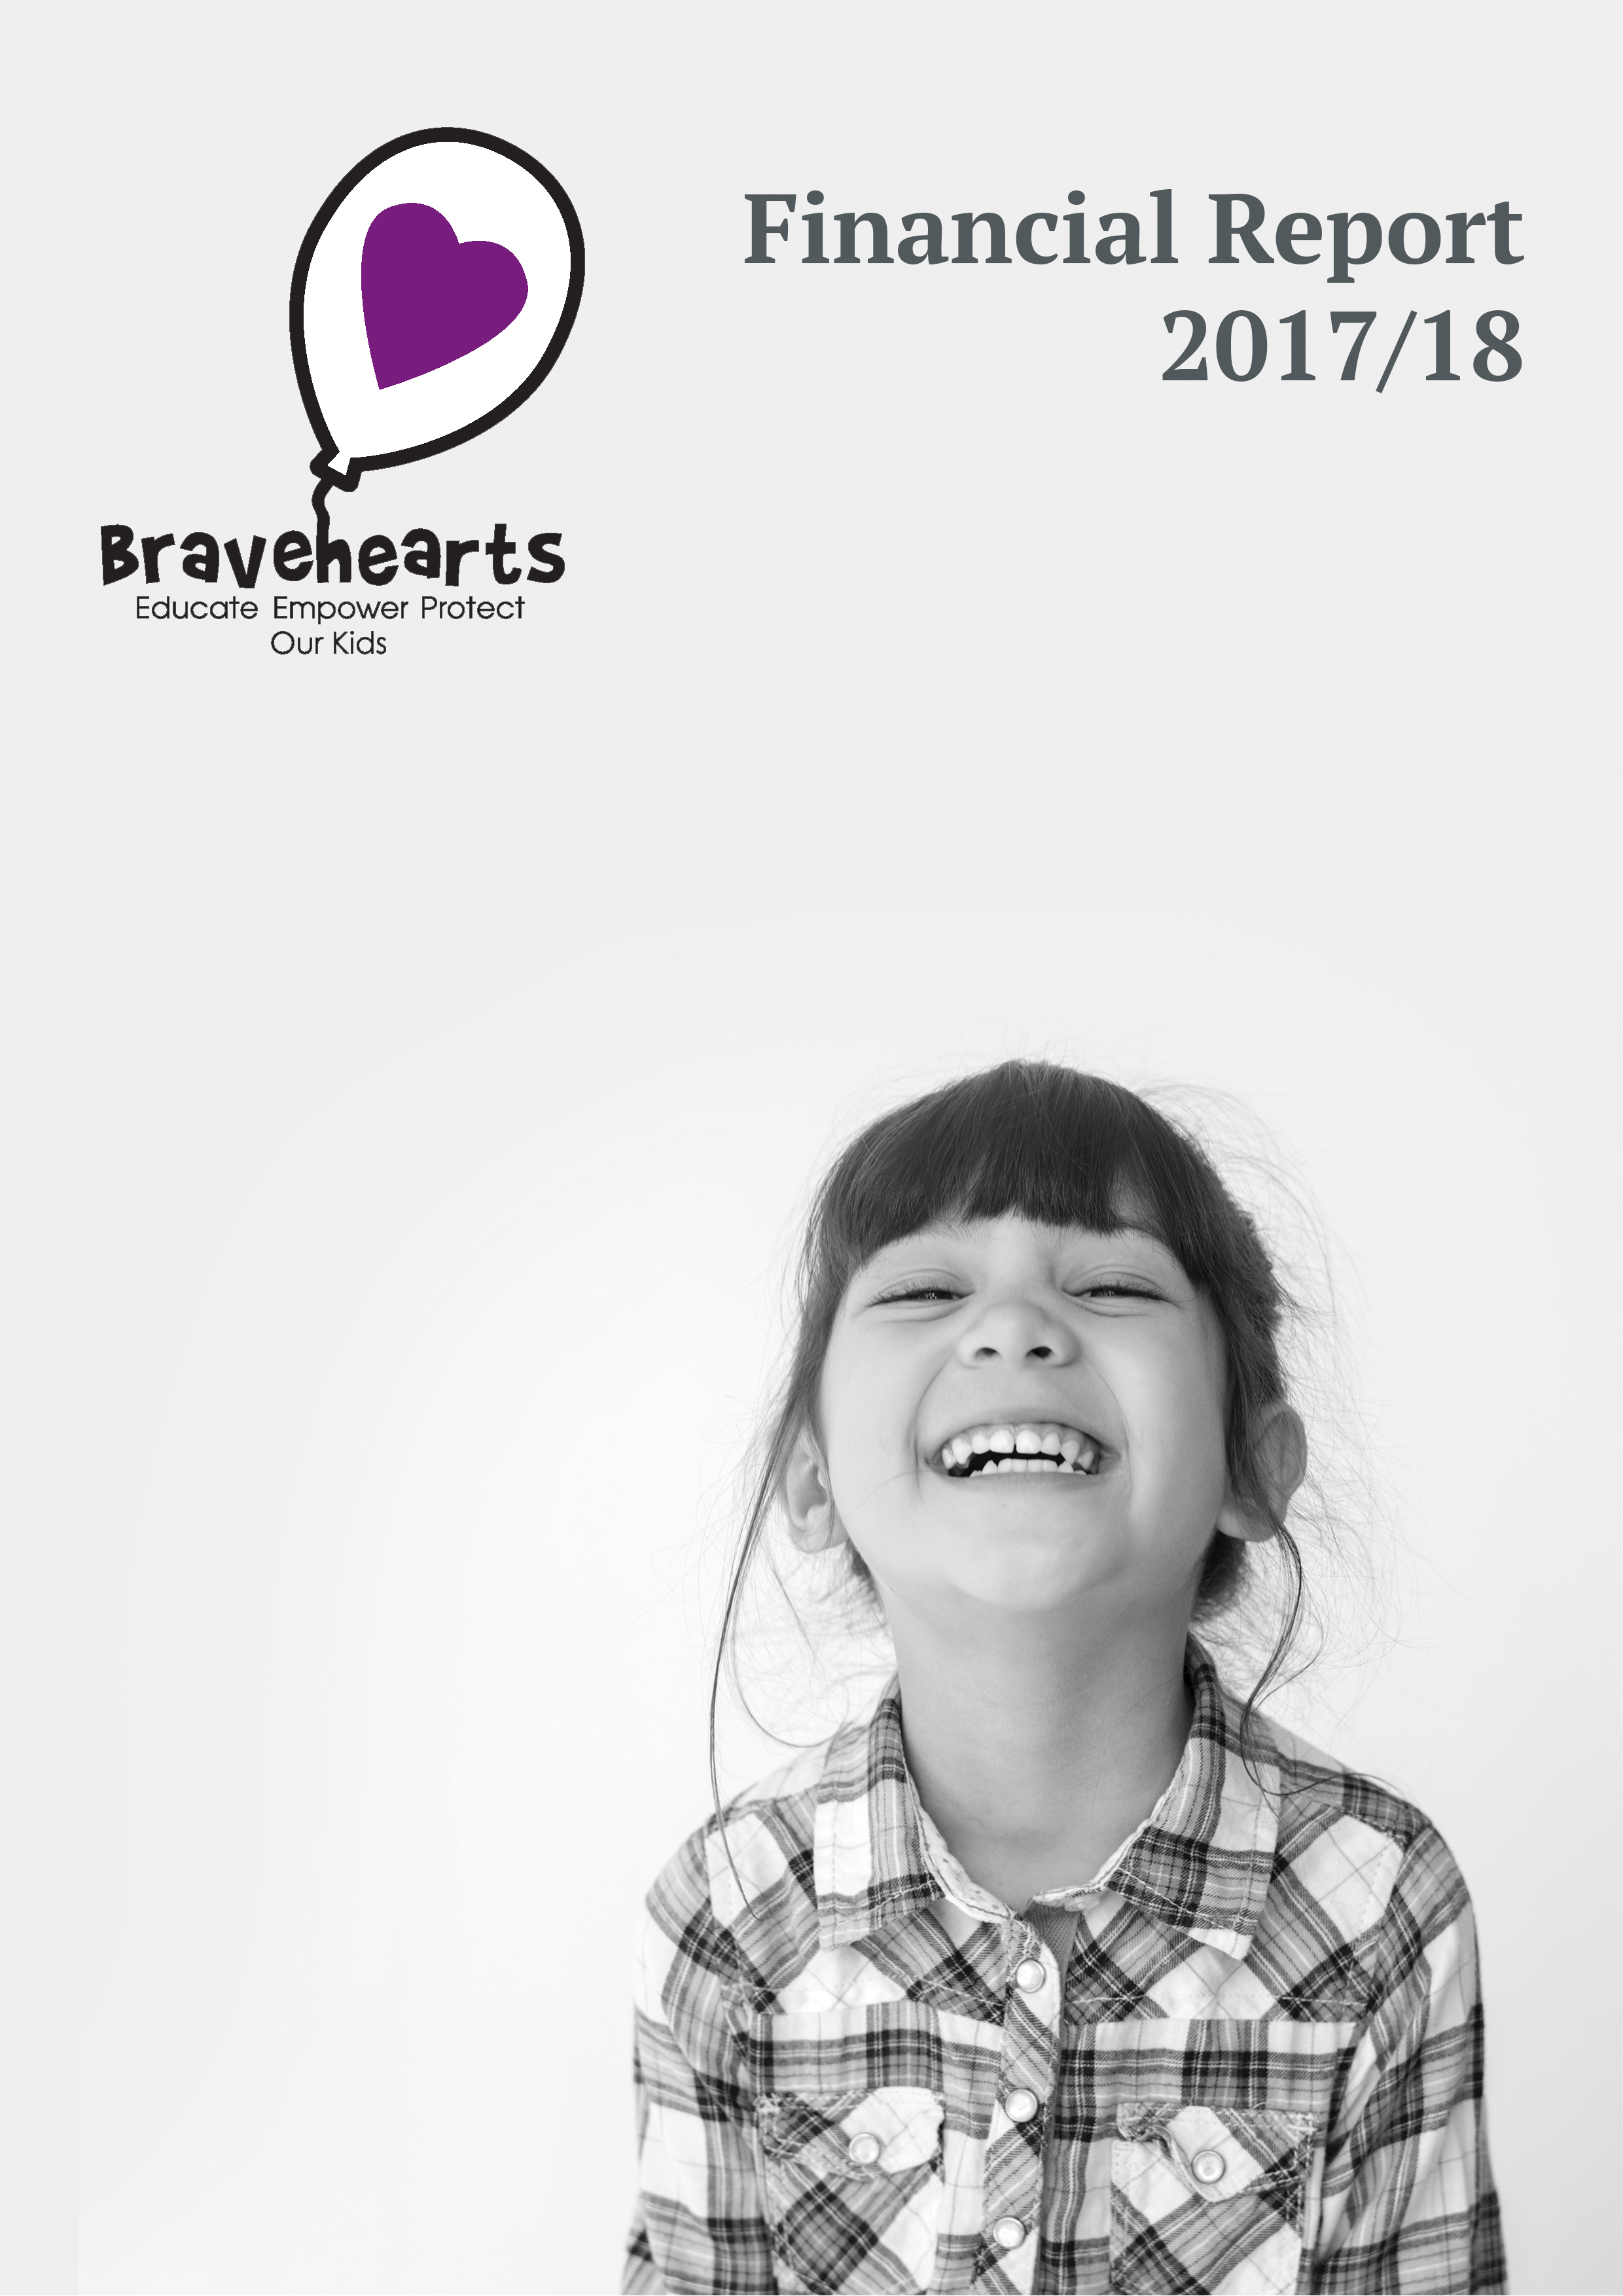 financial report cover bravehearts